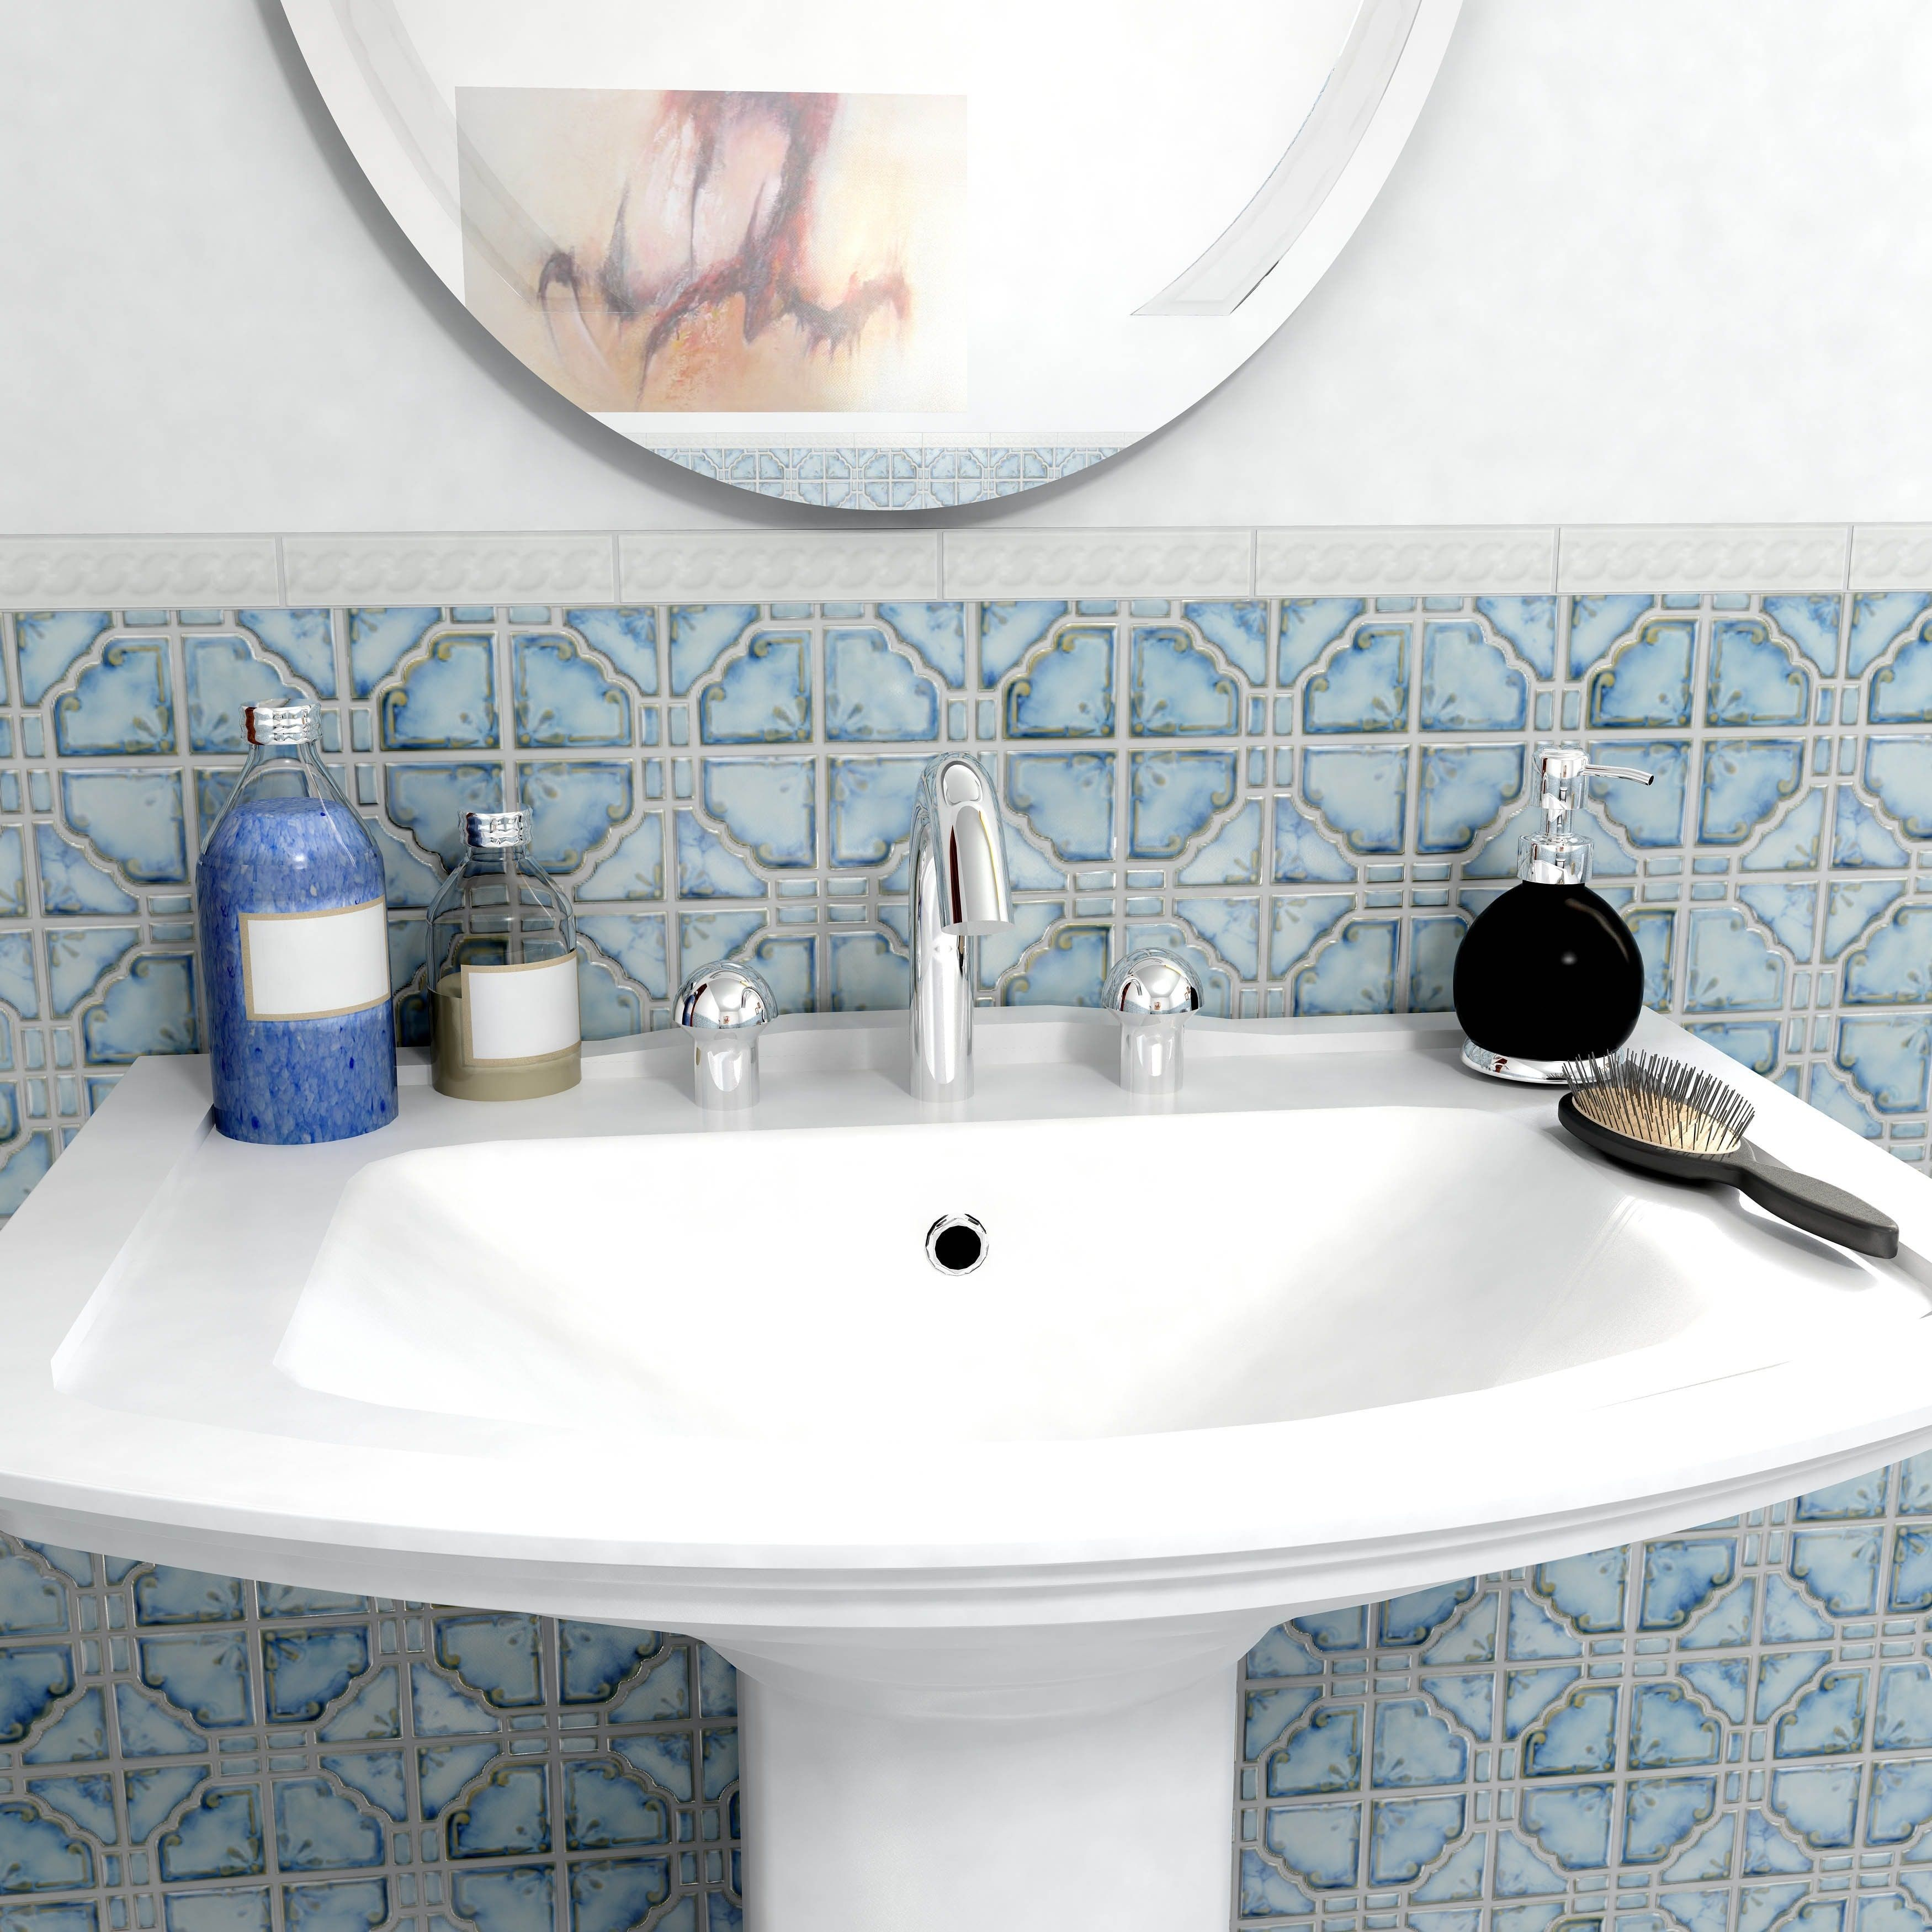 SomerTile 11.75x11.75-inch Luna Diva Porcelain Mosaic Floor and Wall ...